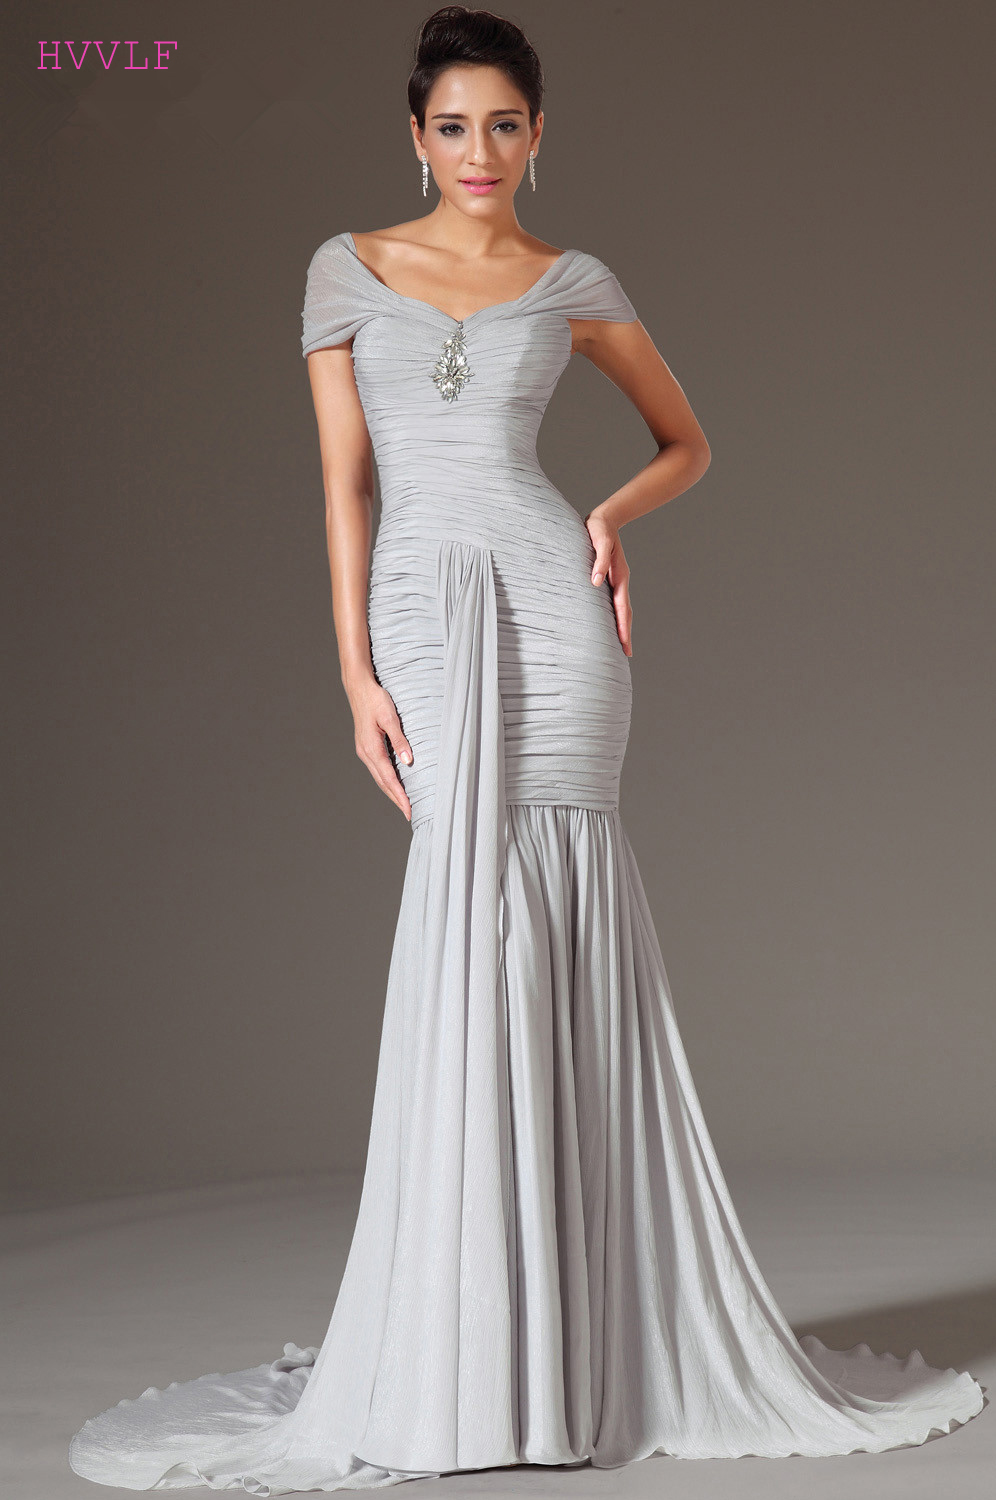 Silver   Evening     Dresses   2019 Mermaid V-neck Cap Sleeves Chiffon Plus Size Long   Evening   Gown Prom   Dresses   Robe De Soiree